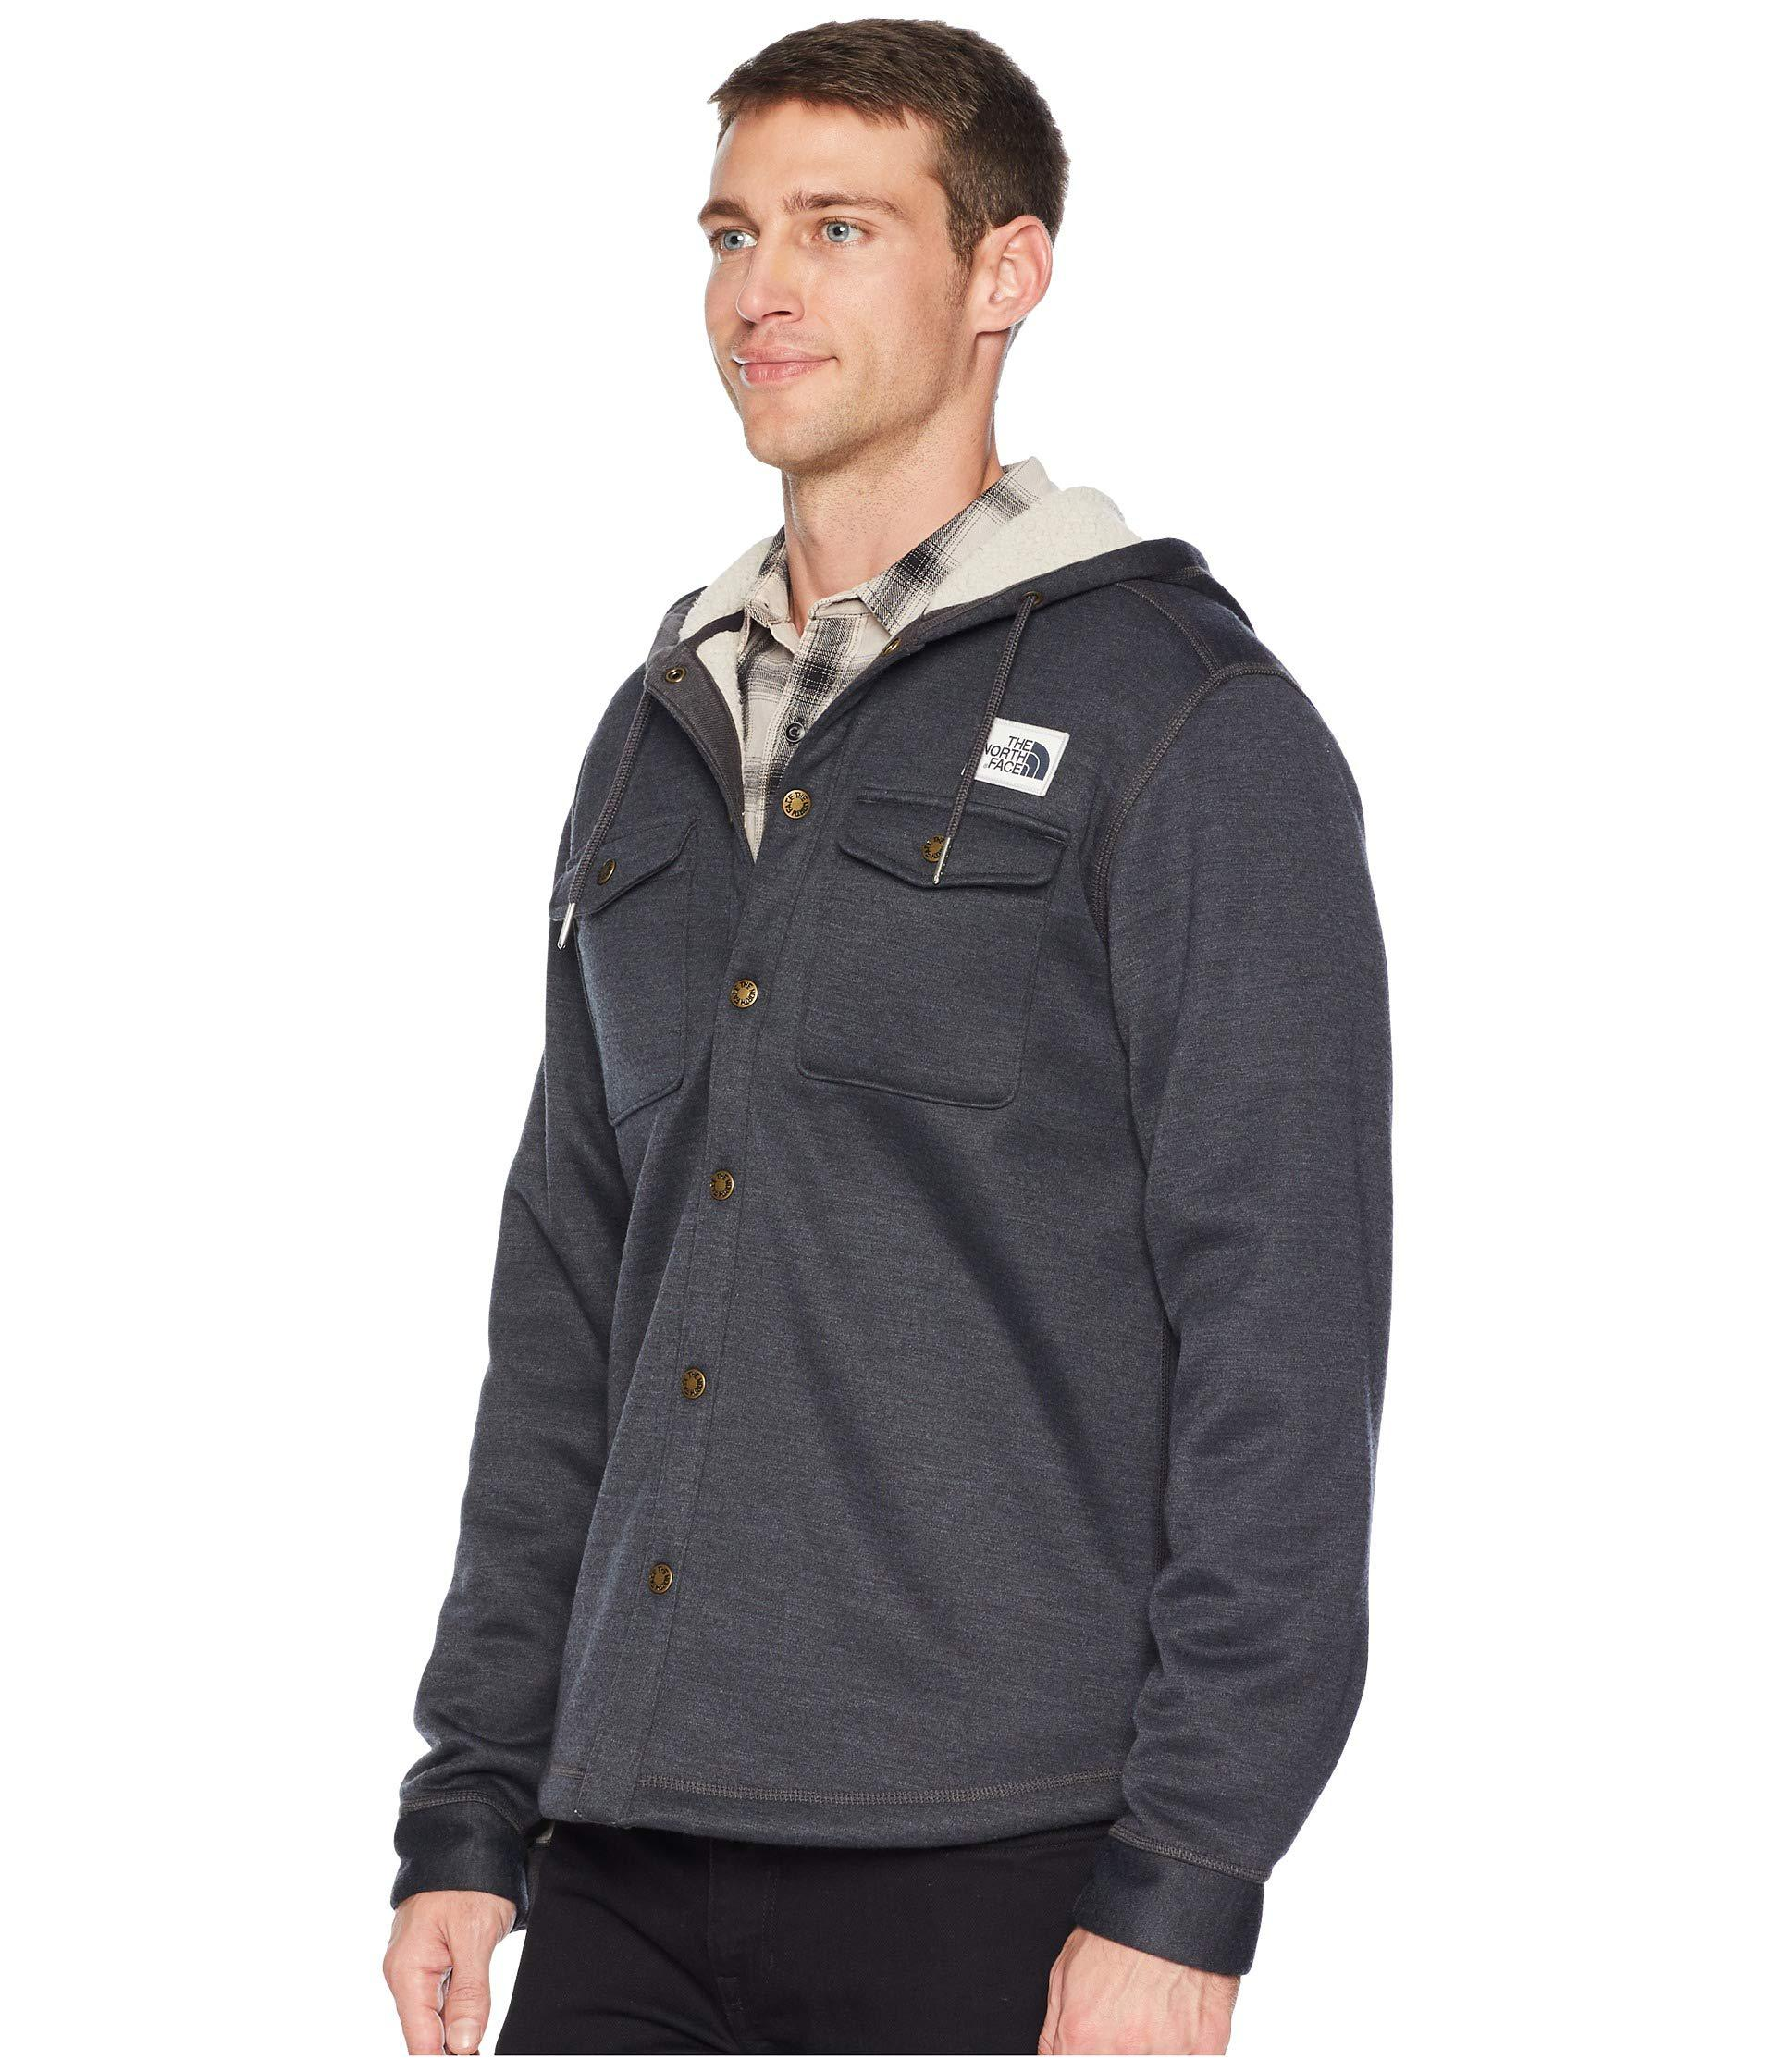 c5b400bb435 Lyst - The North Face Sherpa Patrol Snap-up Hoodie (shady Blue Heather) Men s  Sweatshirt in Blue for Men